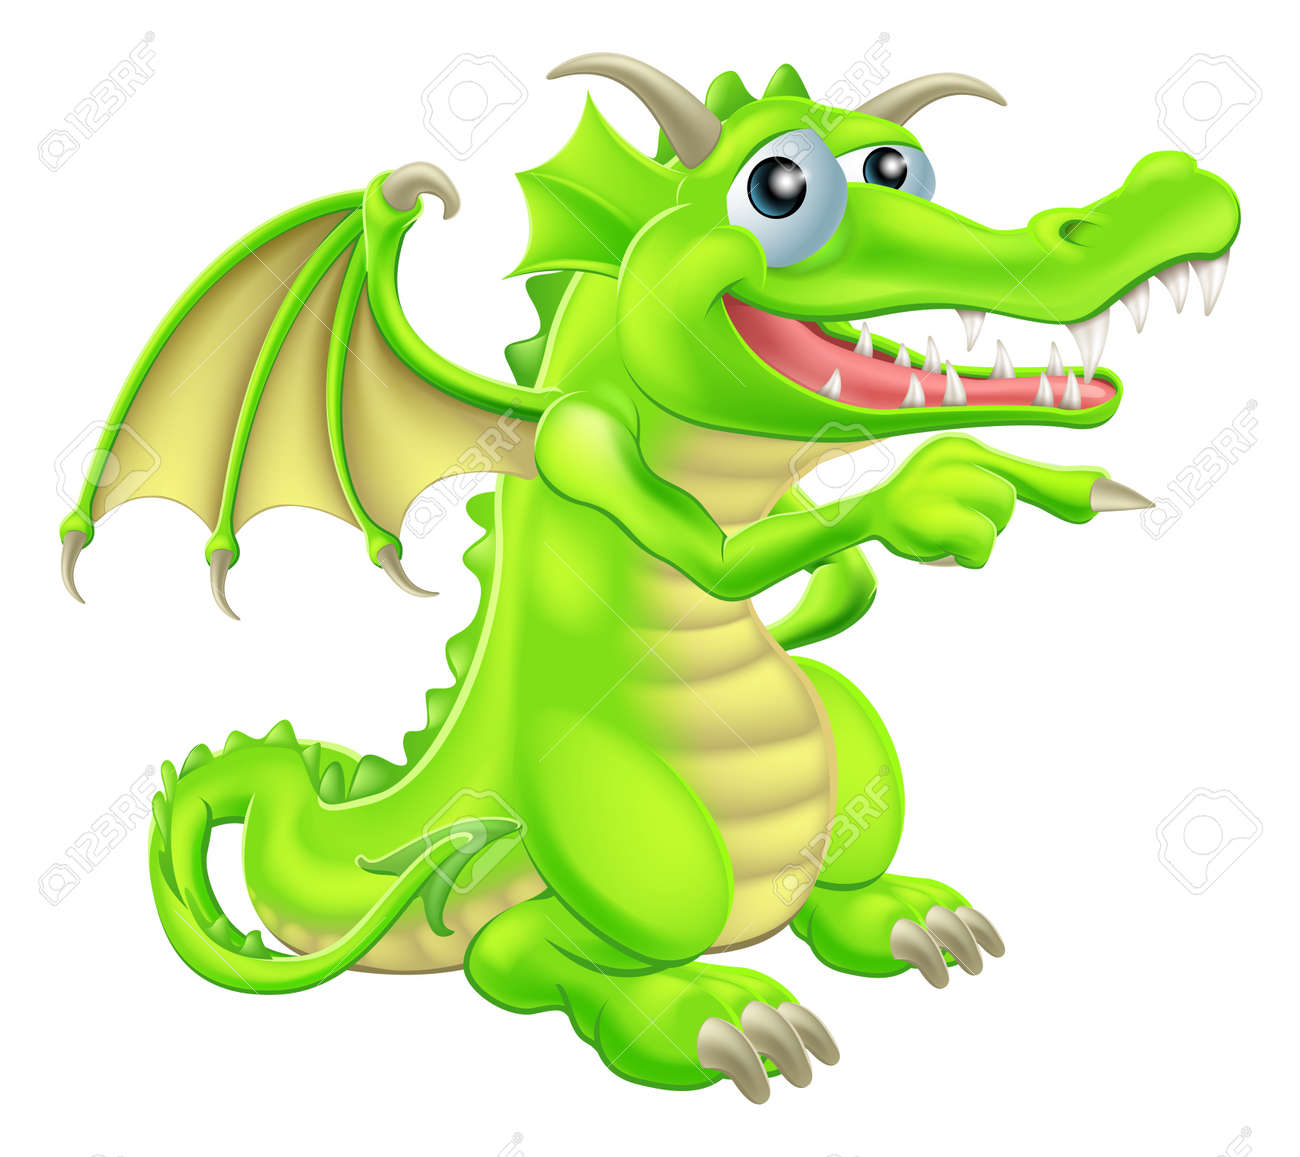 An illustration of a cute cartoon dragon mascot standing and pointing Stock Vector - 20018599